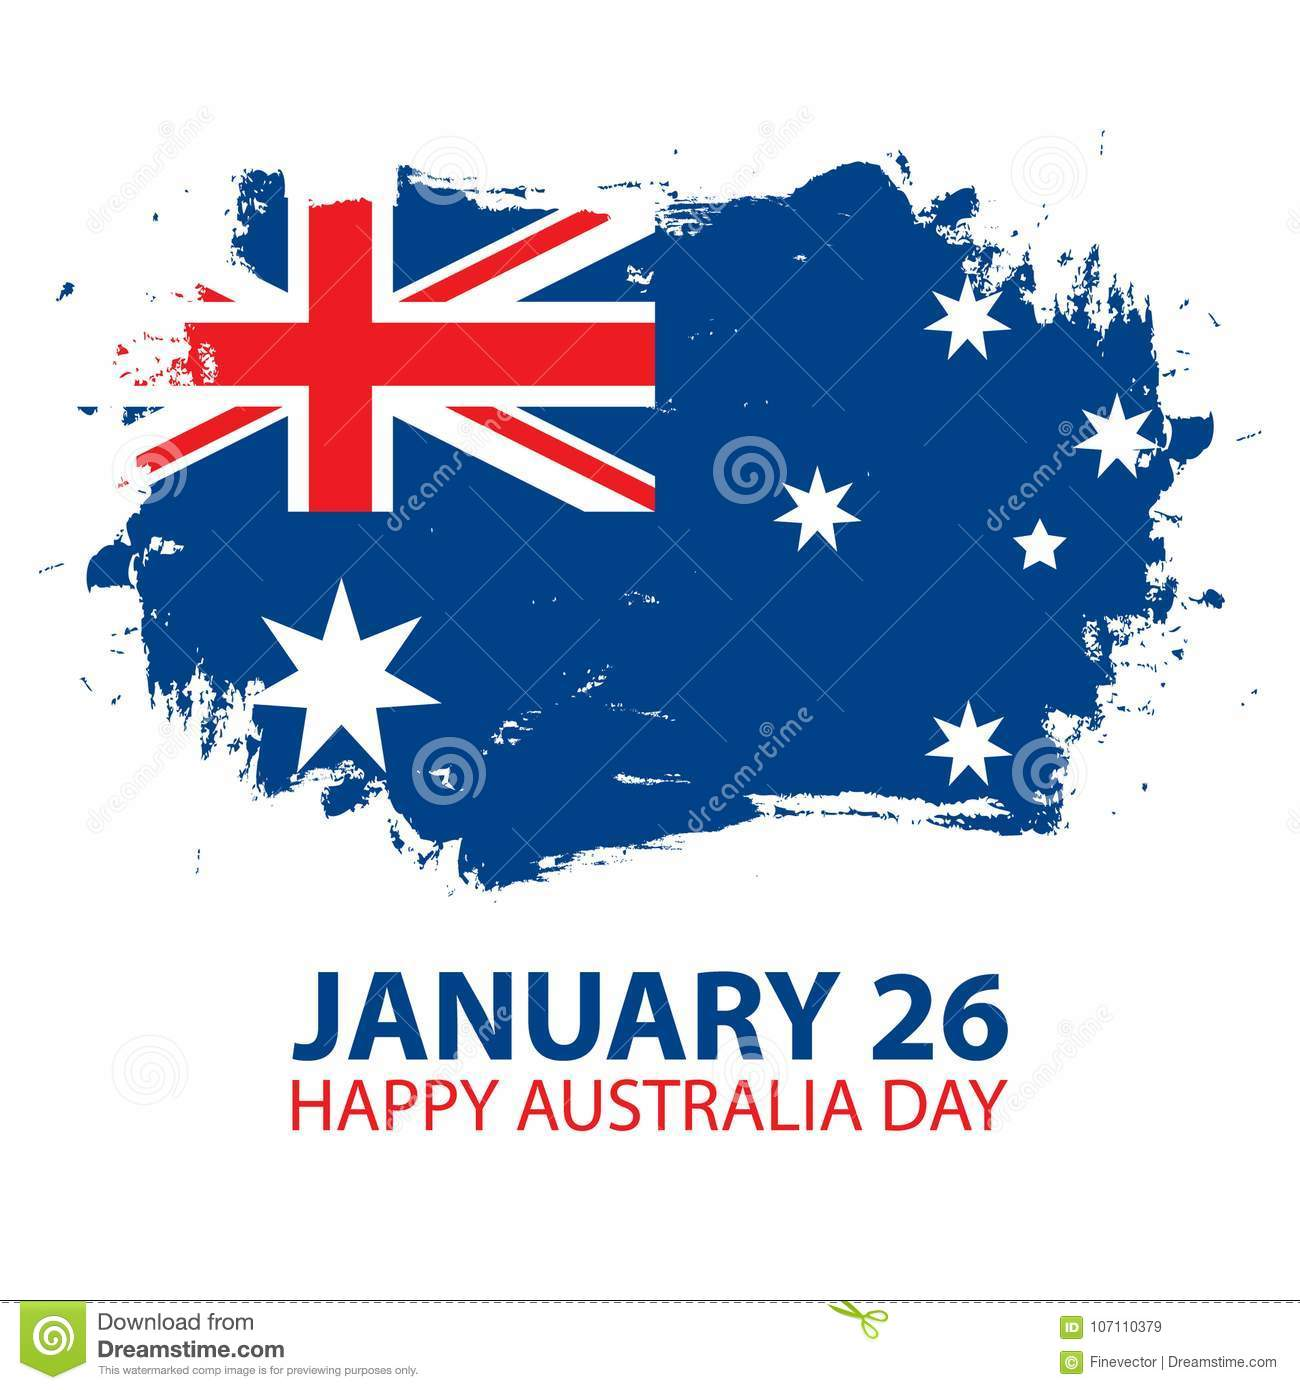 Happy australia day january 26 greeting card with brush stroke in download happy australia day january 26 greeting card with brush stroke in colors of the m4hsunfo